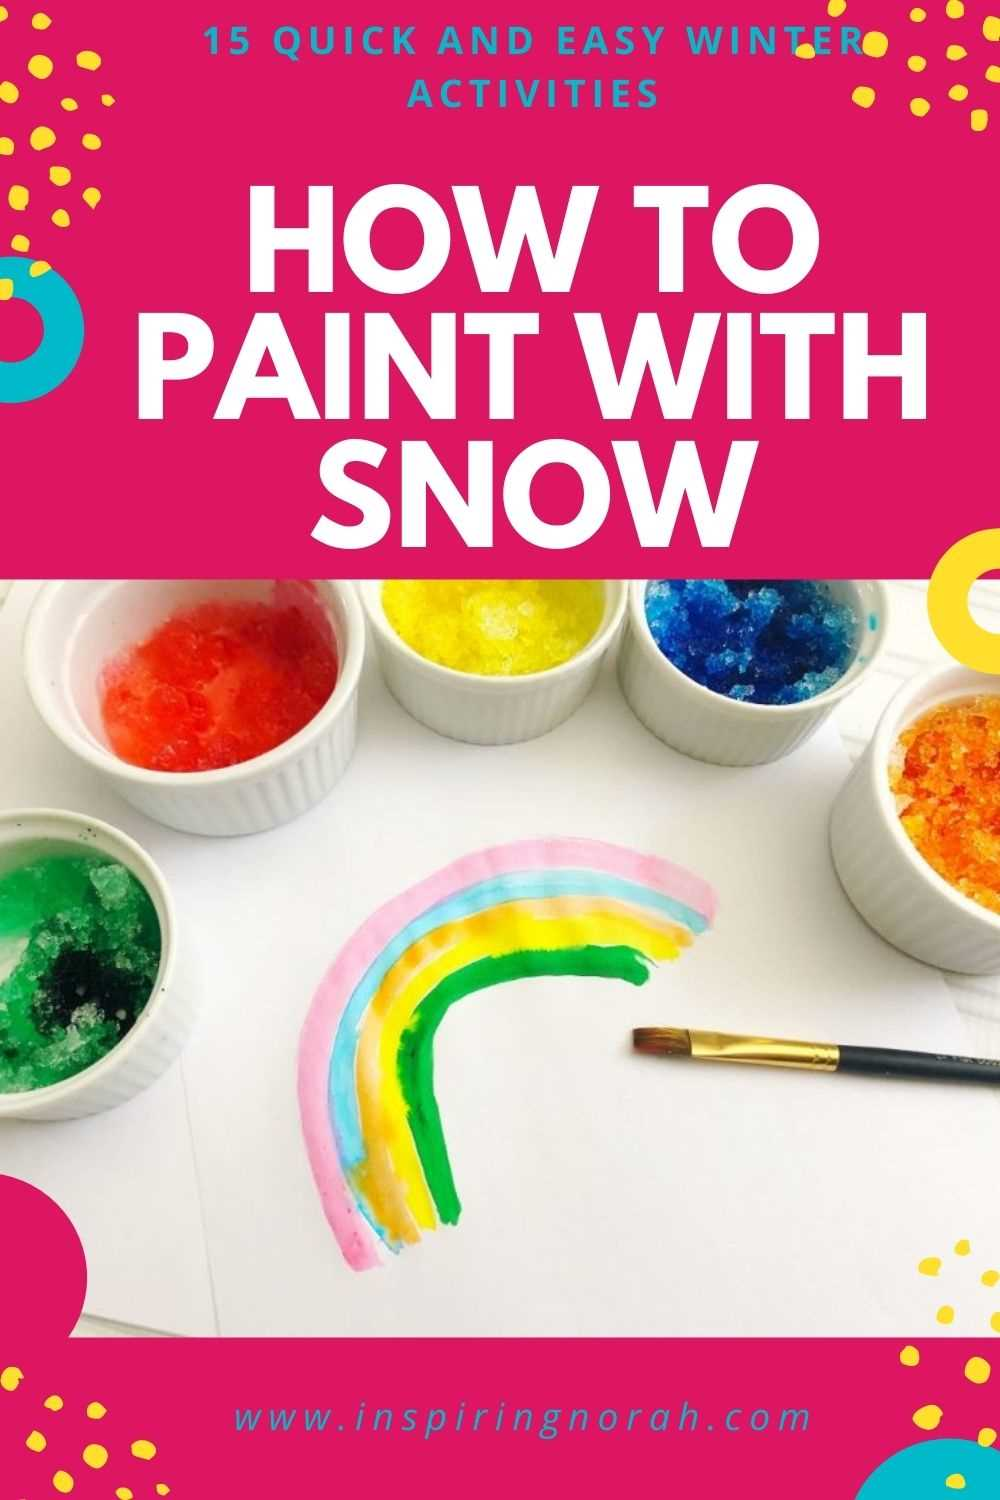 HOW TO PAINT WITH SNOW